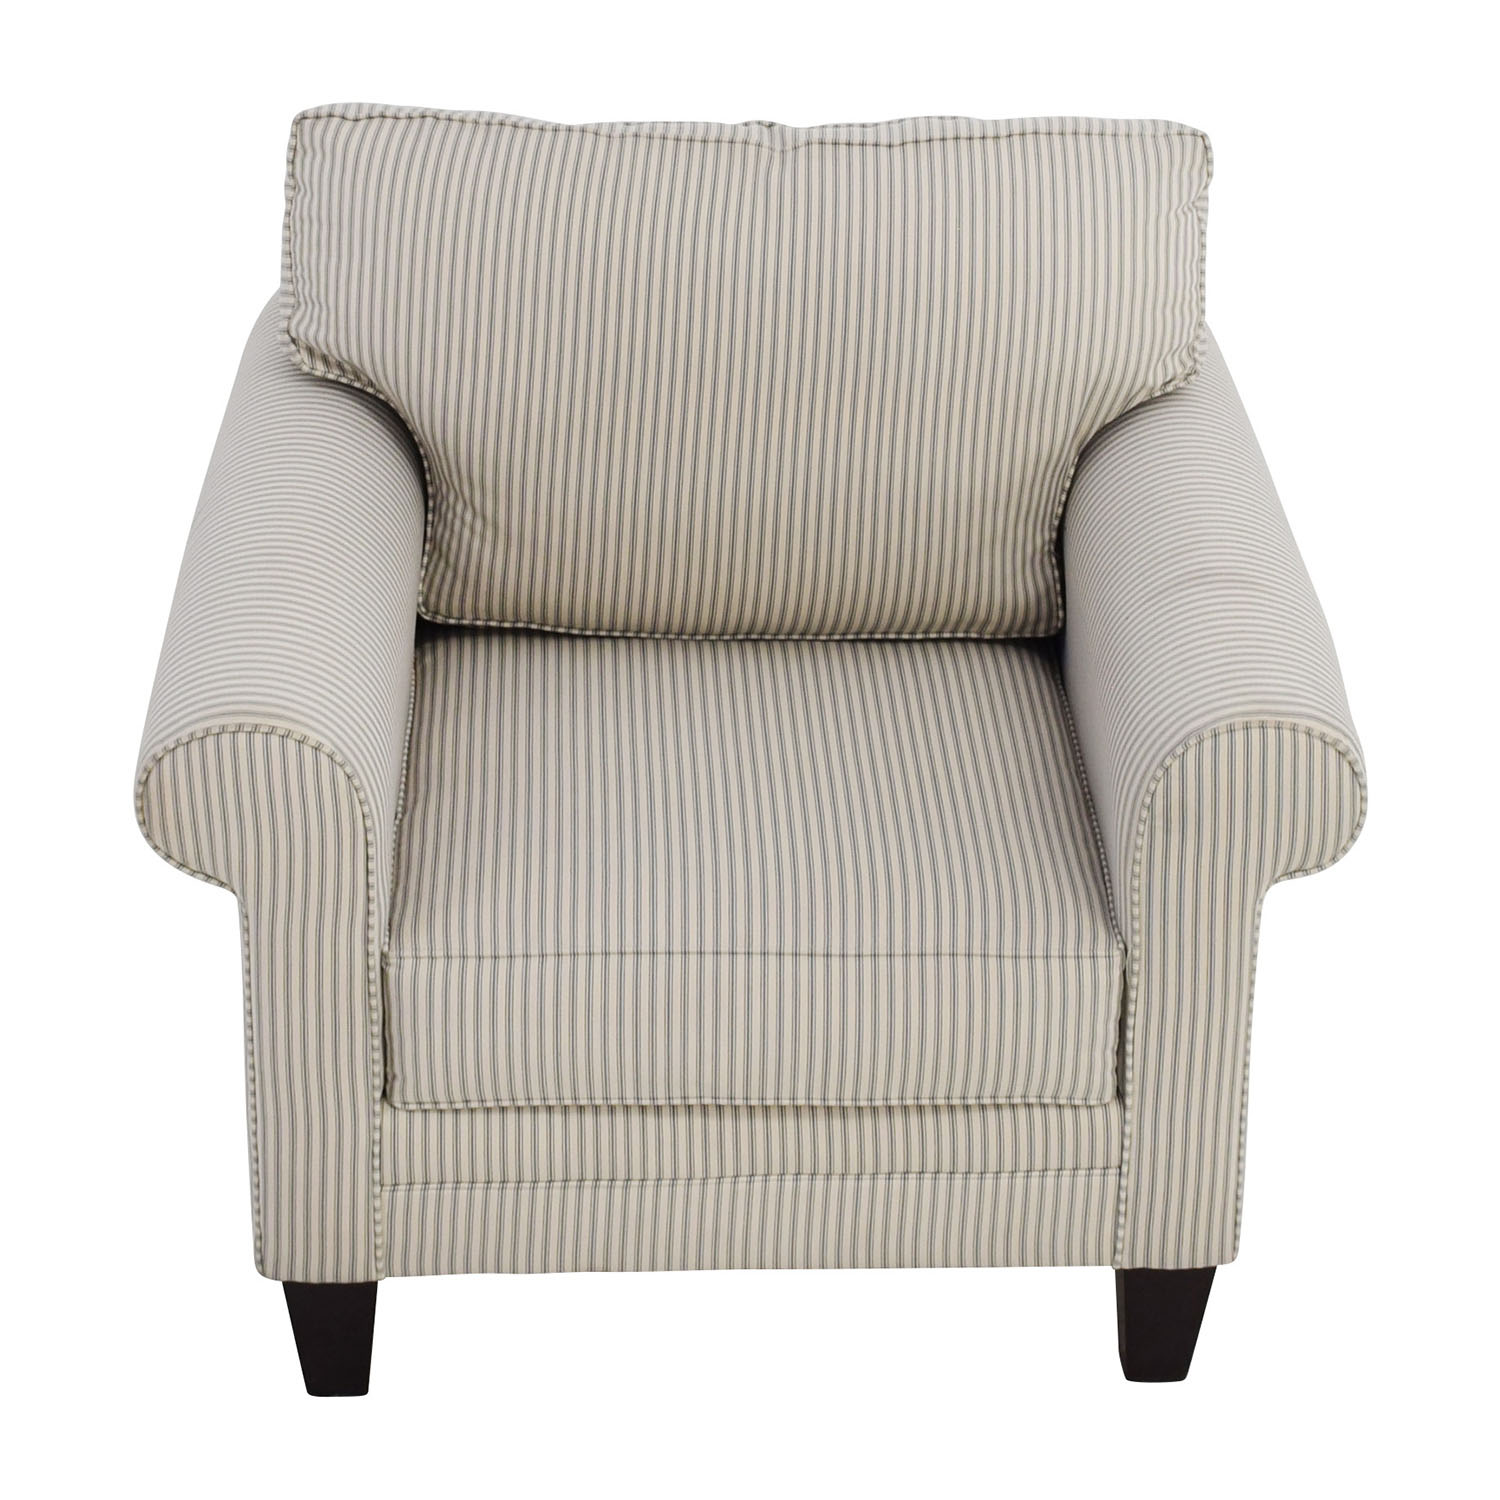 Raymour and Flanigan Raymour and Flanigan Striped Cream Chair coupon